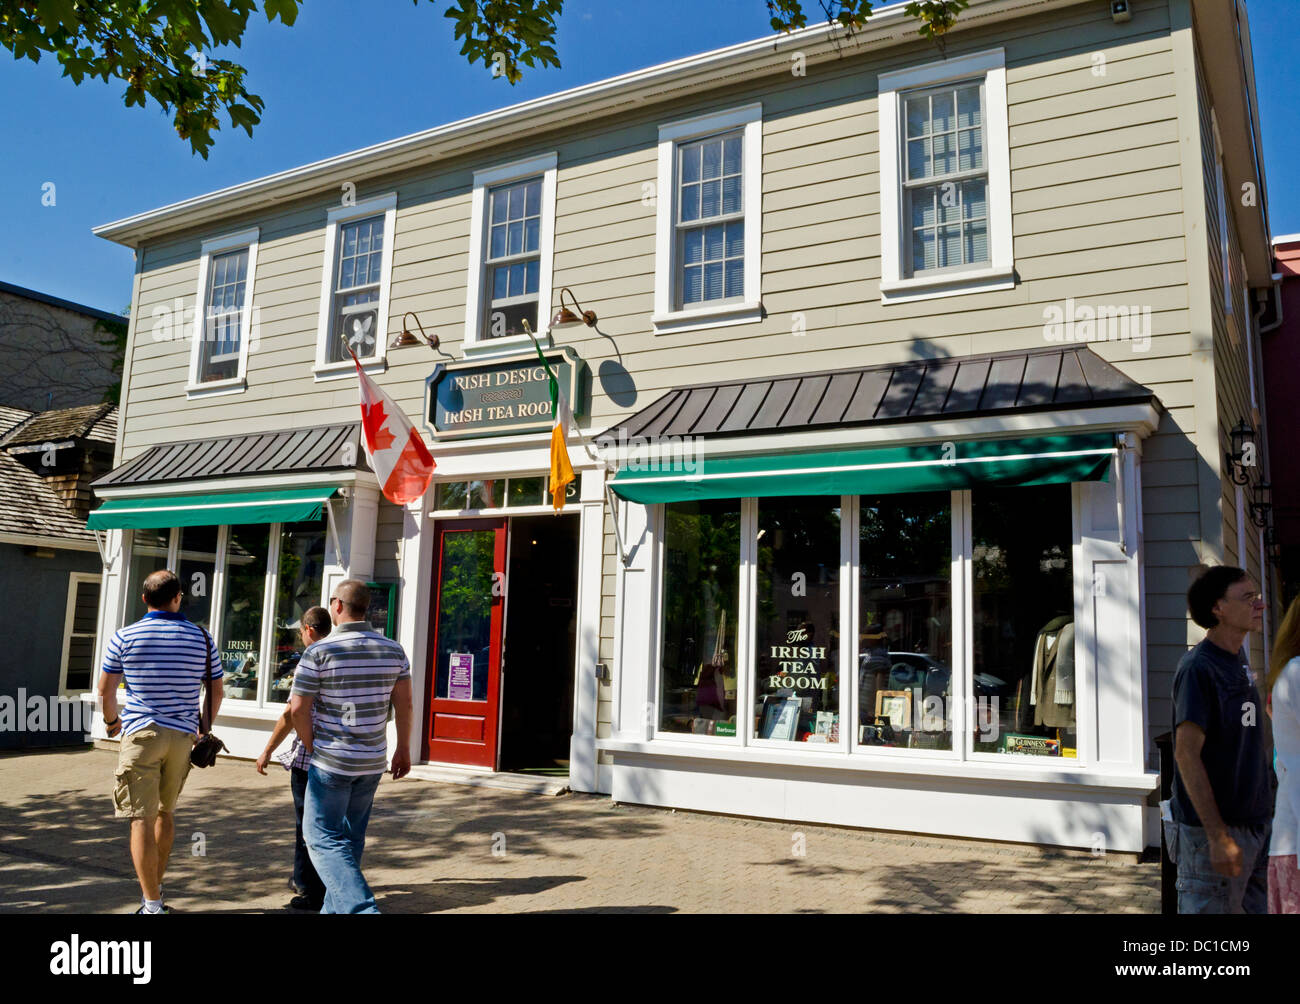 Exterior building shot of the Irish Tea Room in historic Niagara-On-The-Lake, ON, Canada. - Stock Image